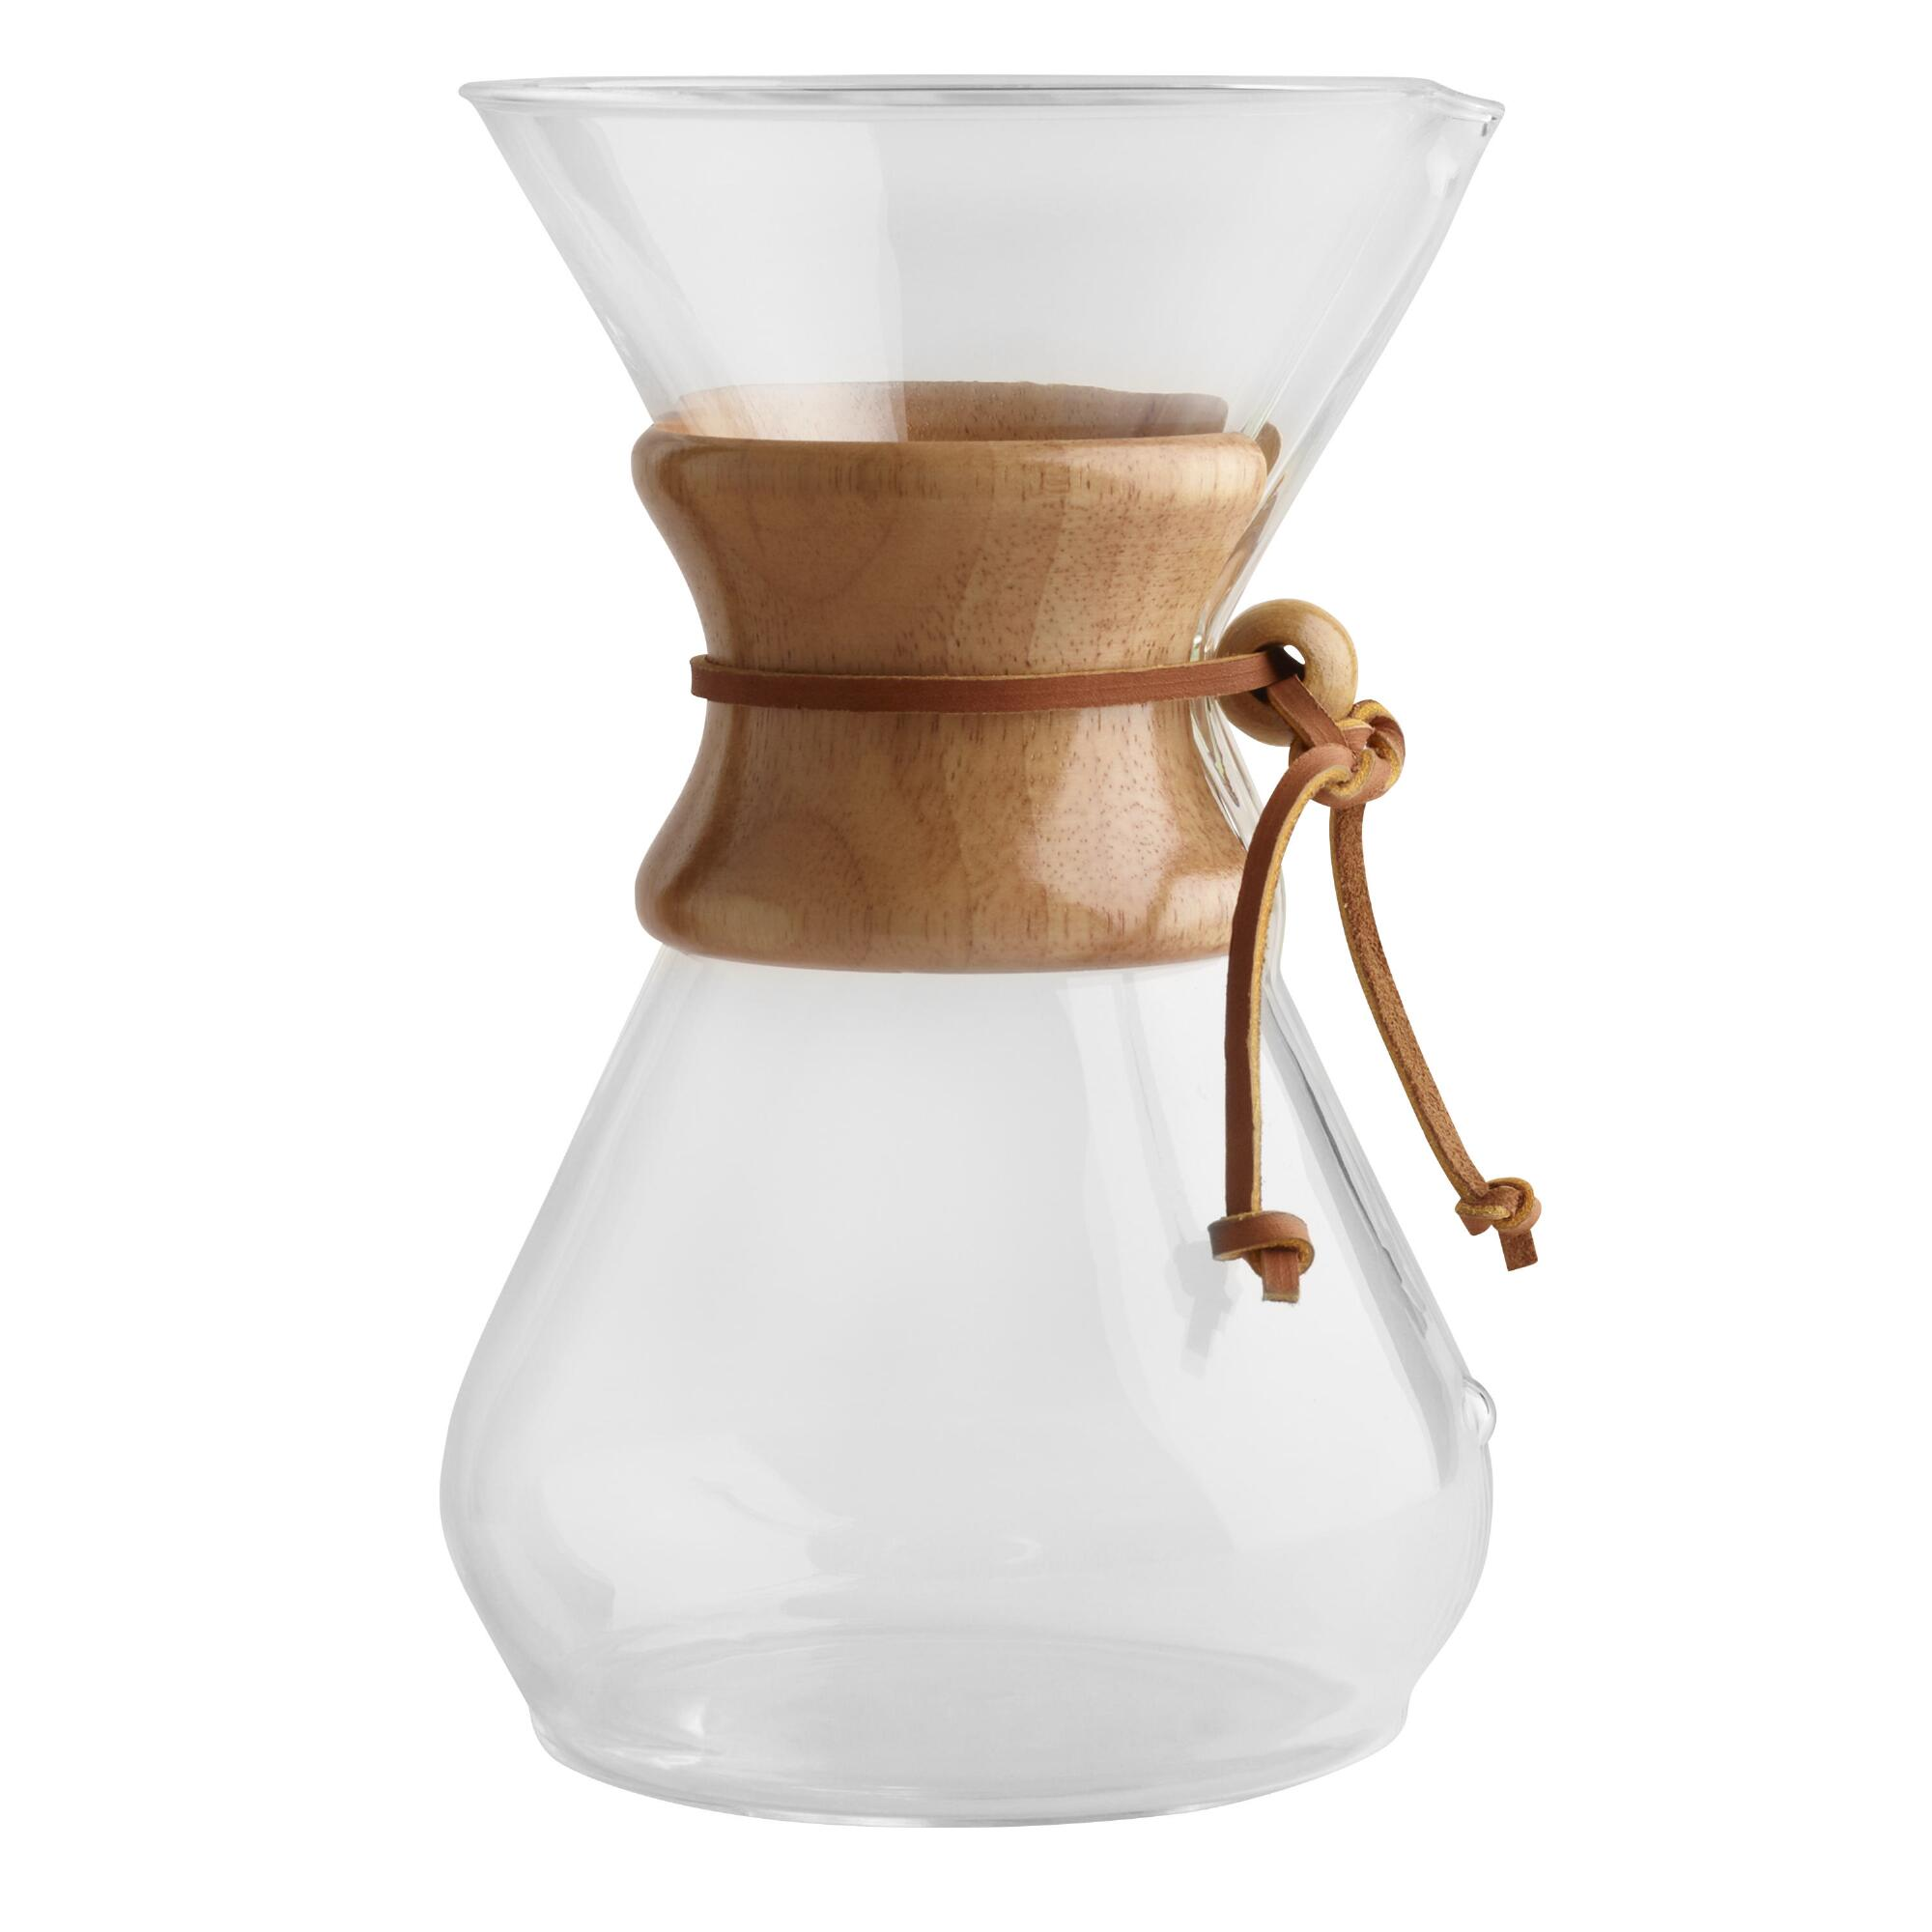 Bed bath beyond french press - Chemex 8 Cup Coffeemaker